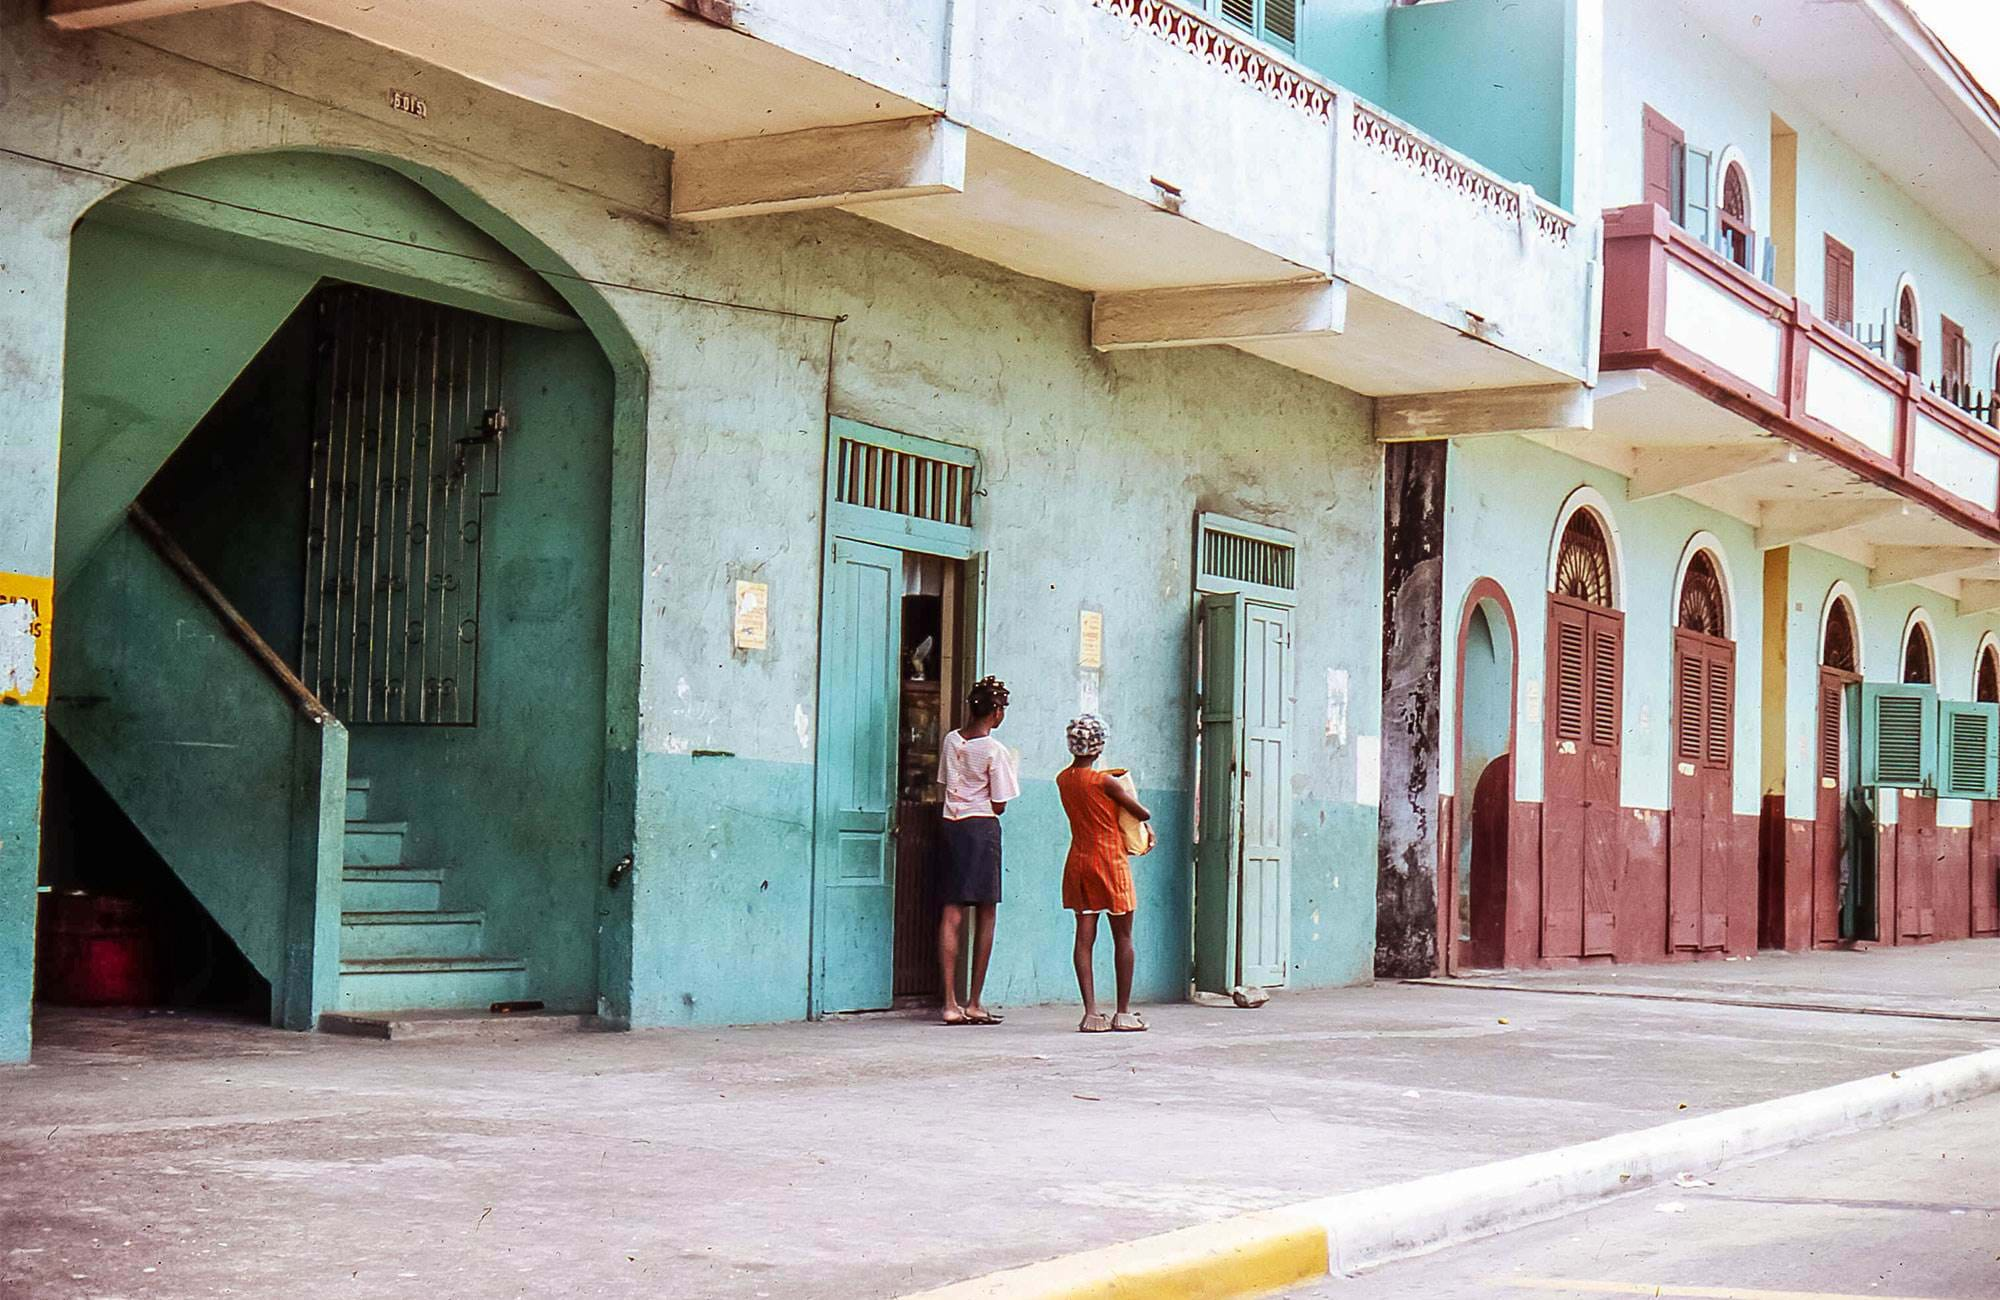 Street in Panama City with women standing in front of colourful colonial buildings